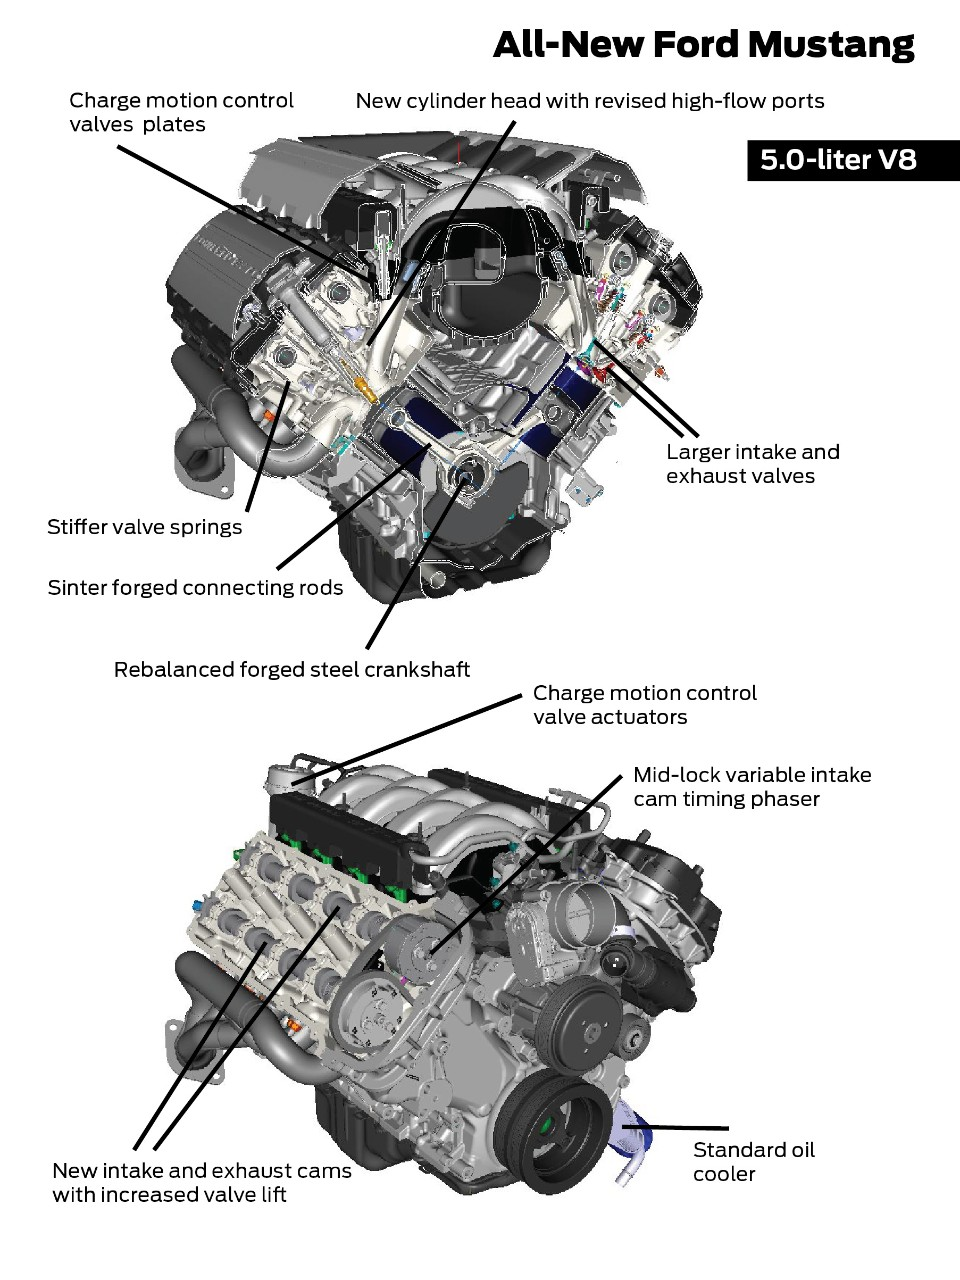 2015 mustang engine specs 5 0l v8 coyote 2015 mustang engine specs 5 0